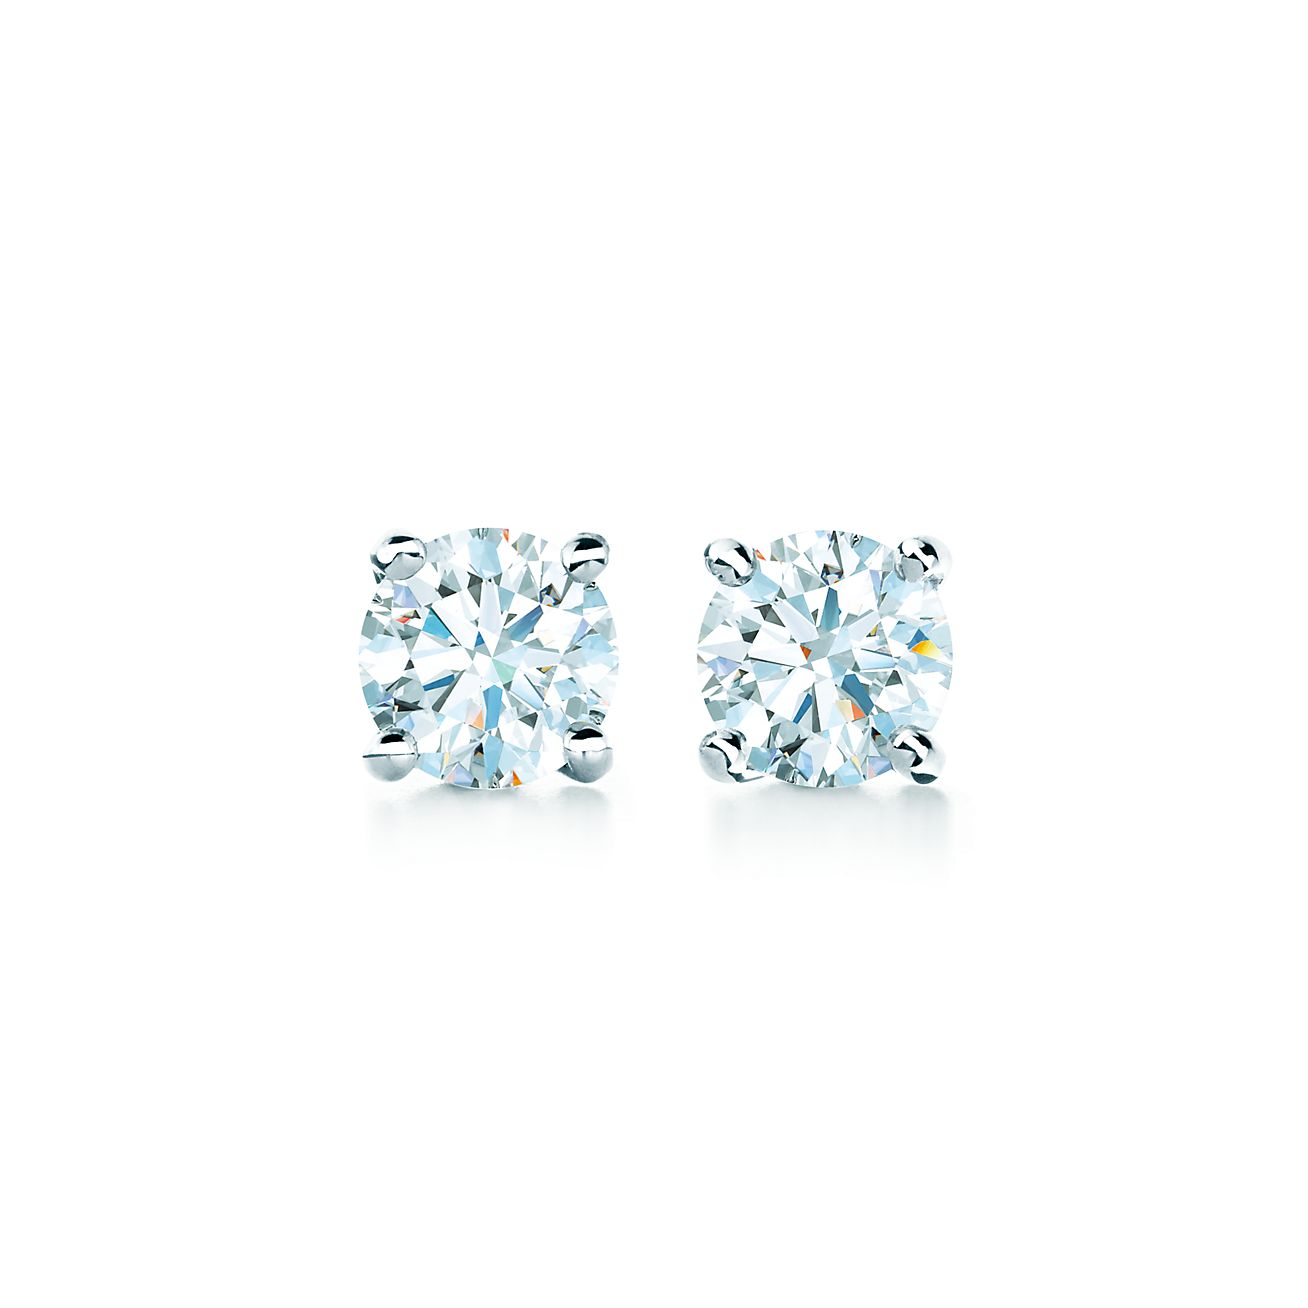 waynee jewellery sk hikashop diamond product earrings component